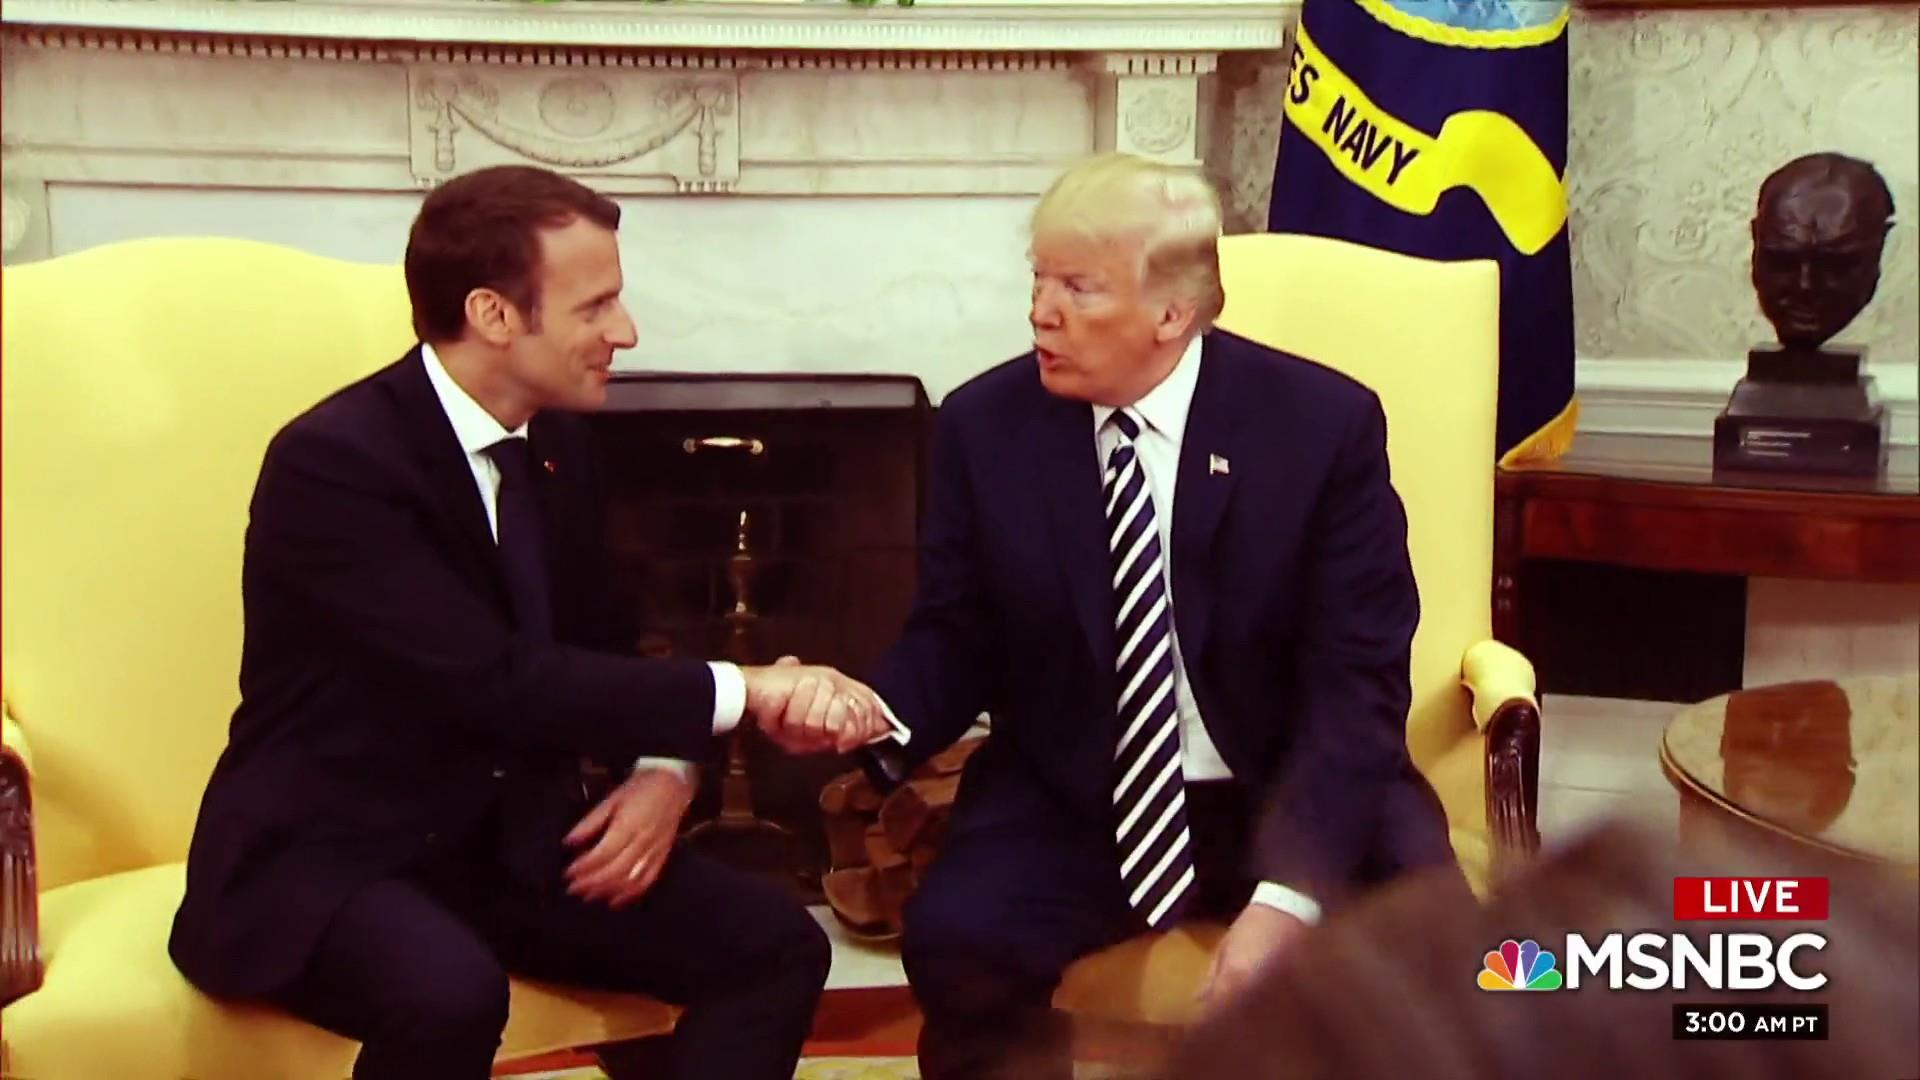 Is France becoming one of our most critical allies?